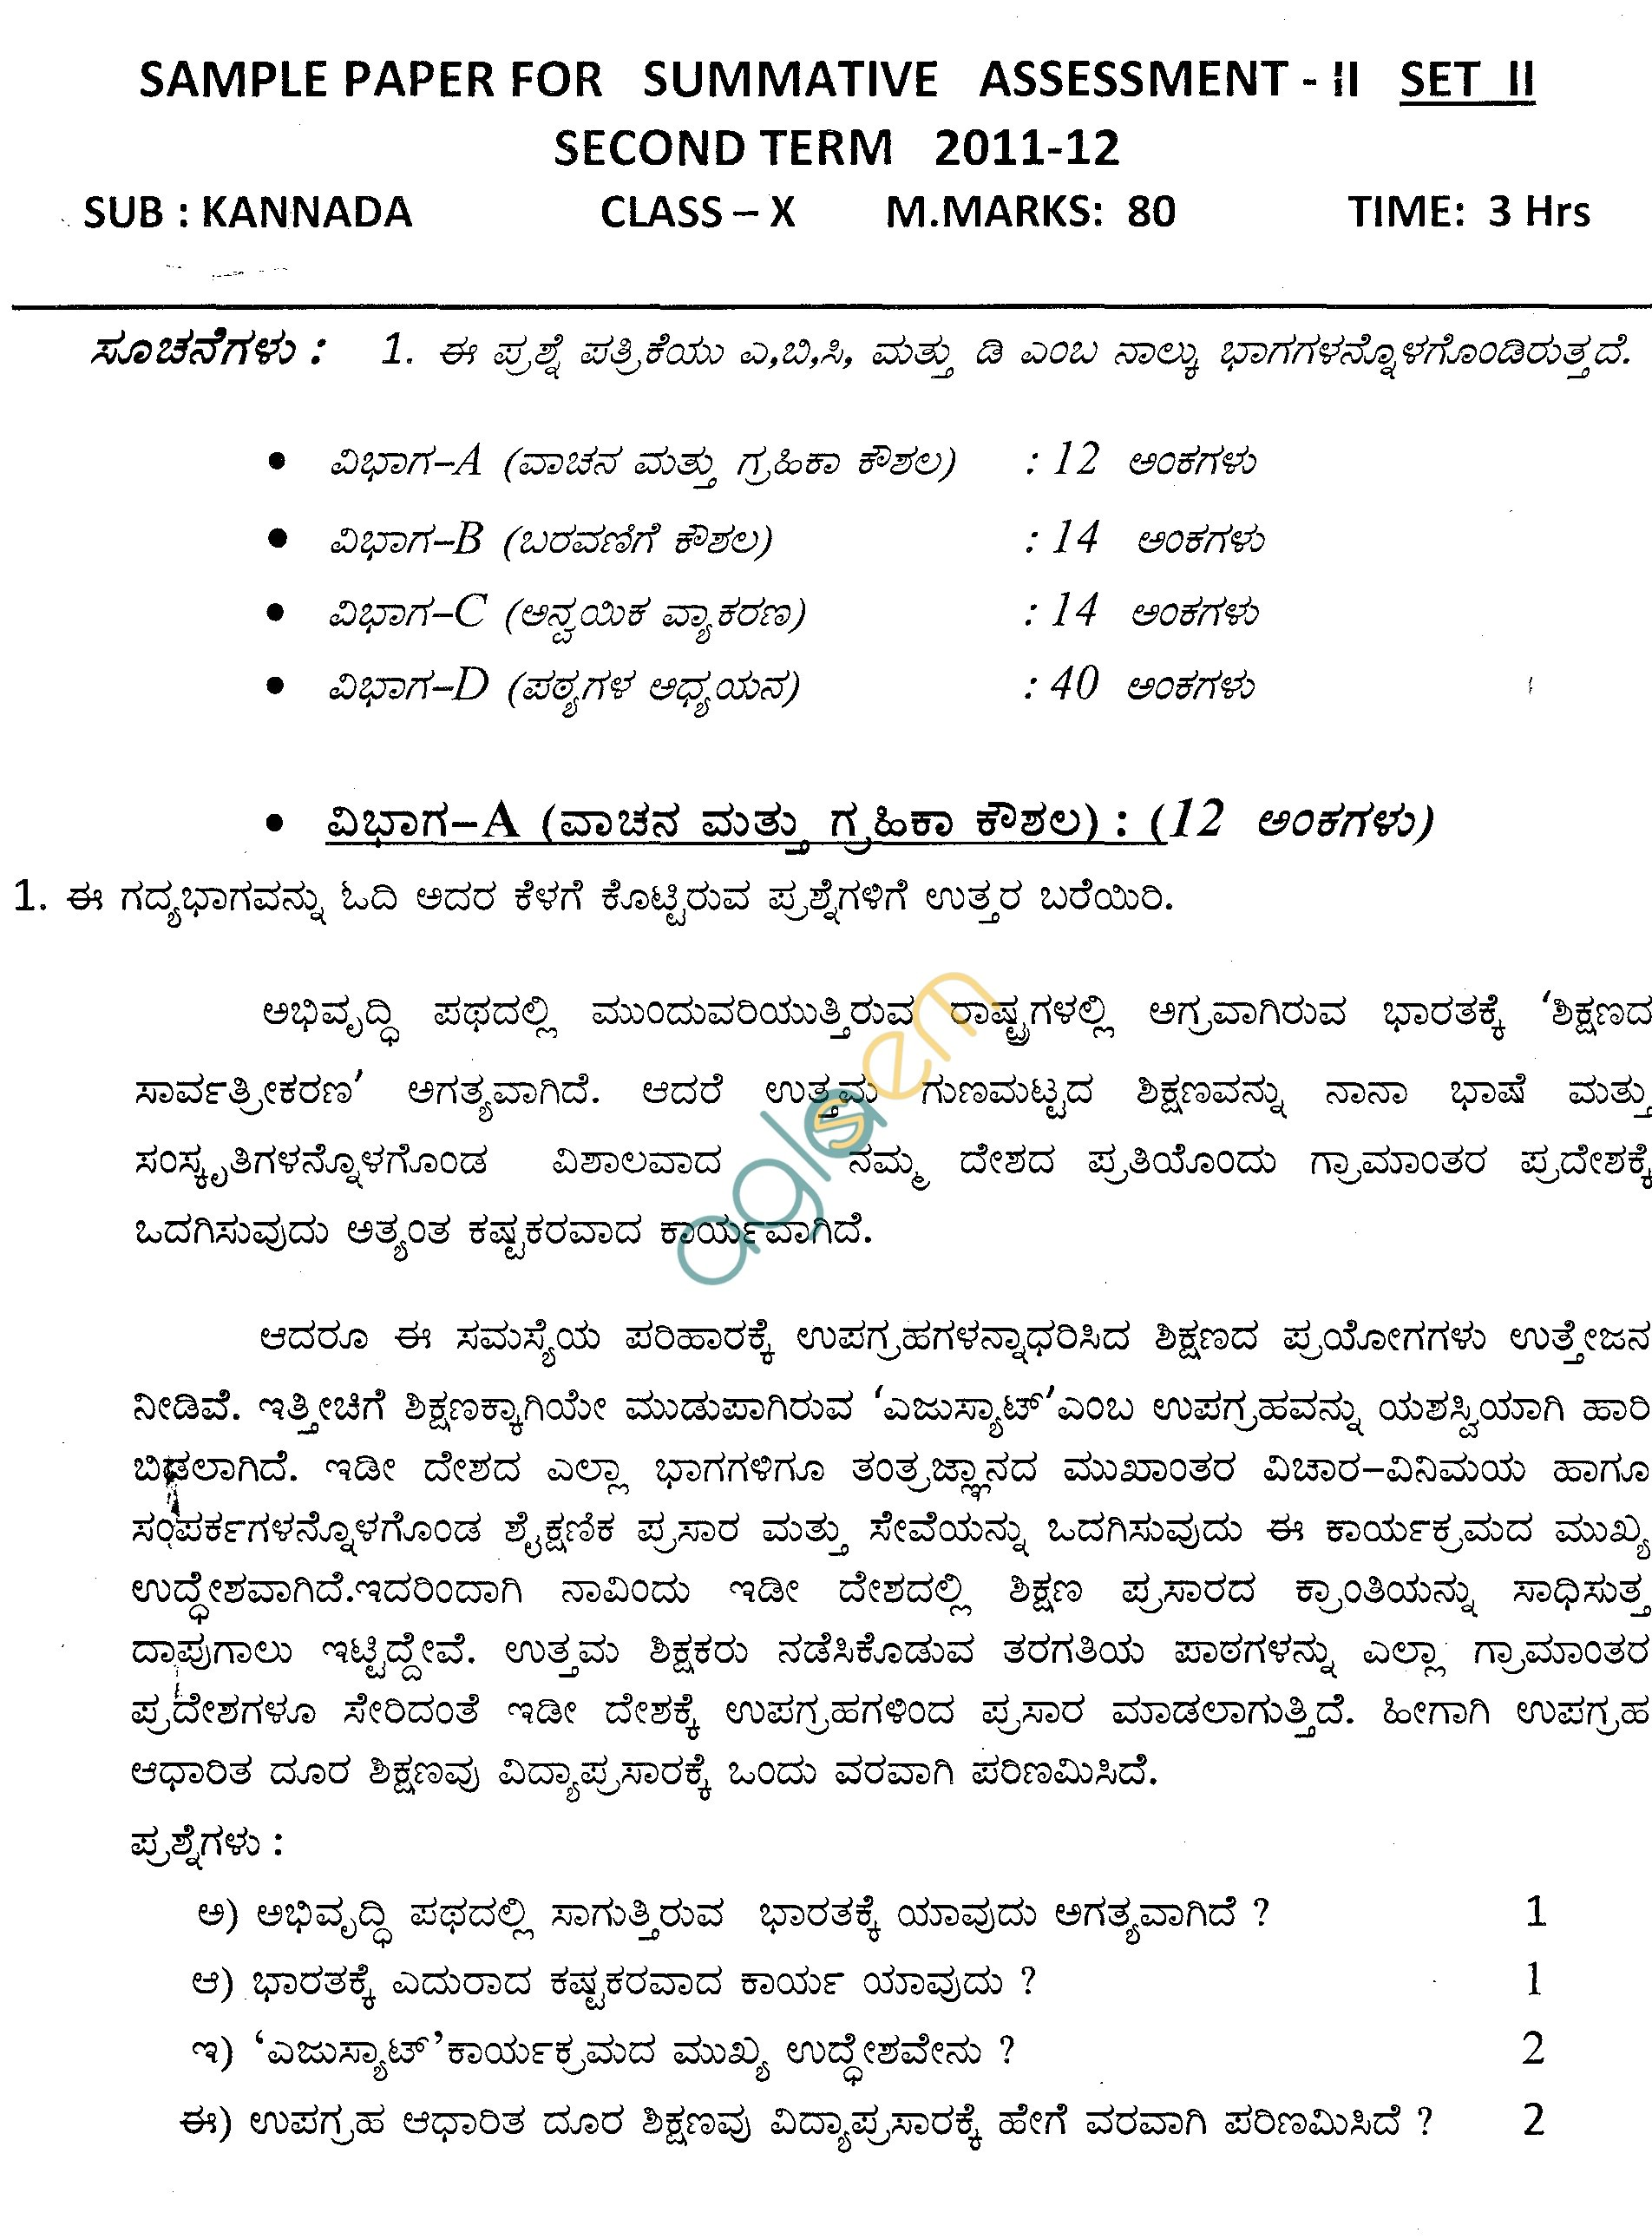 computer education essay in kannada Essay on republic day in kannada виктор богатырё loading kannada essay books free download - duration: 0:35 isone myido 14,097 views basic skills for computer jobs - what you should know about it basics - duration.